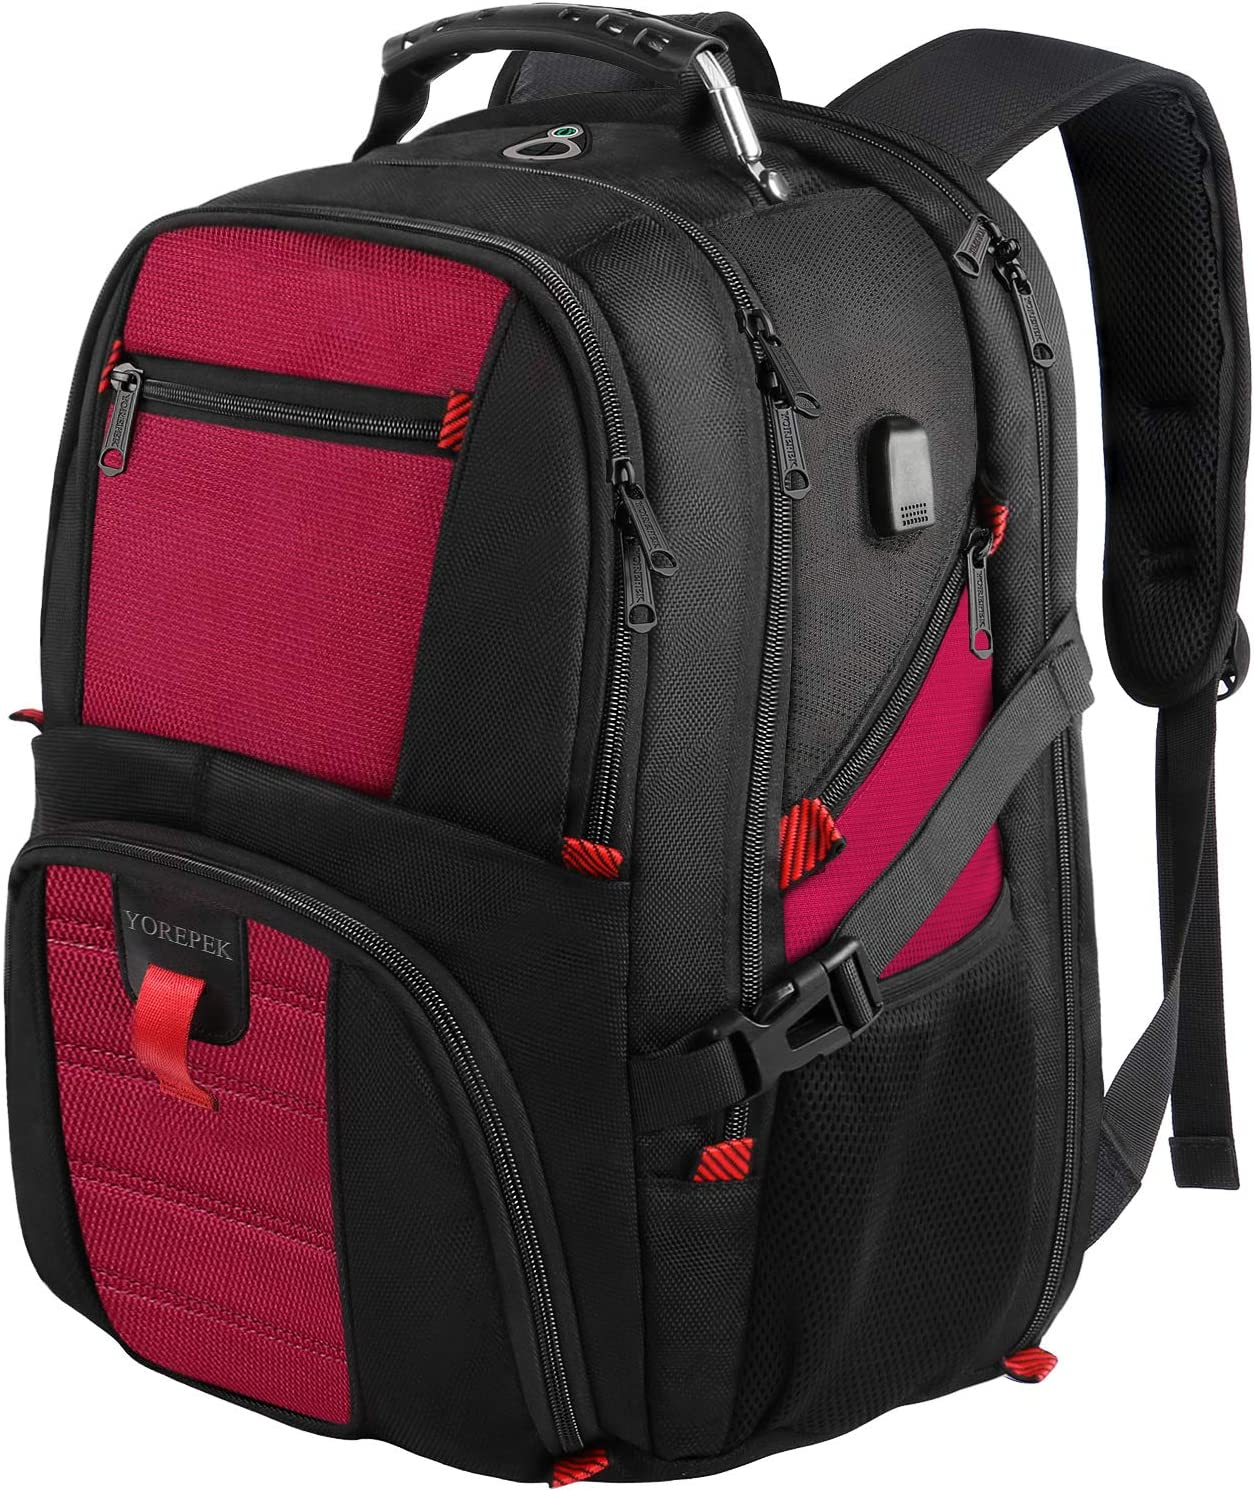 Extra Large Backpack,18.4 Laptop Backpack with USB Port,Travel Backpack for Women with Luggage Sleeve,TSA Friendly Big College Bag Business Computer Backpack Fit Most 18Inch Gaming Laptops,Red